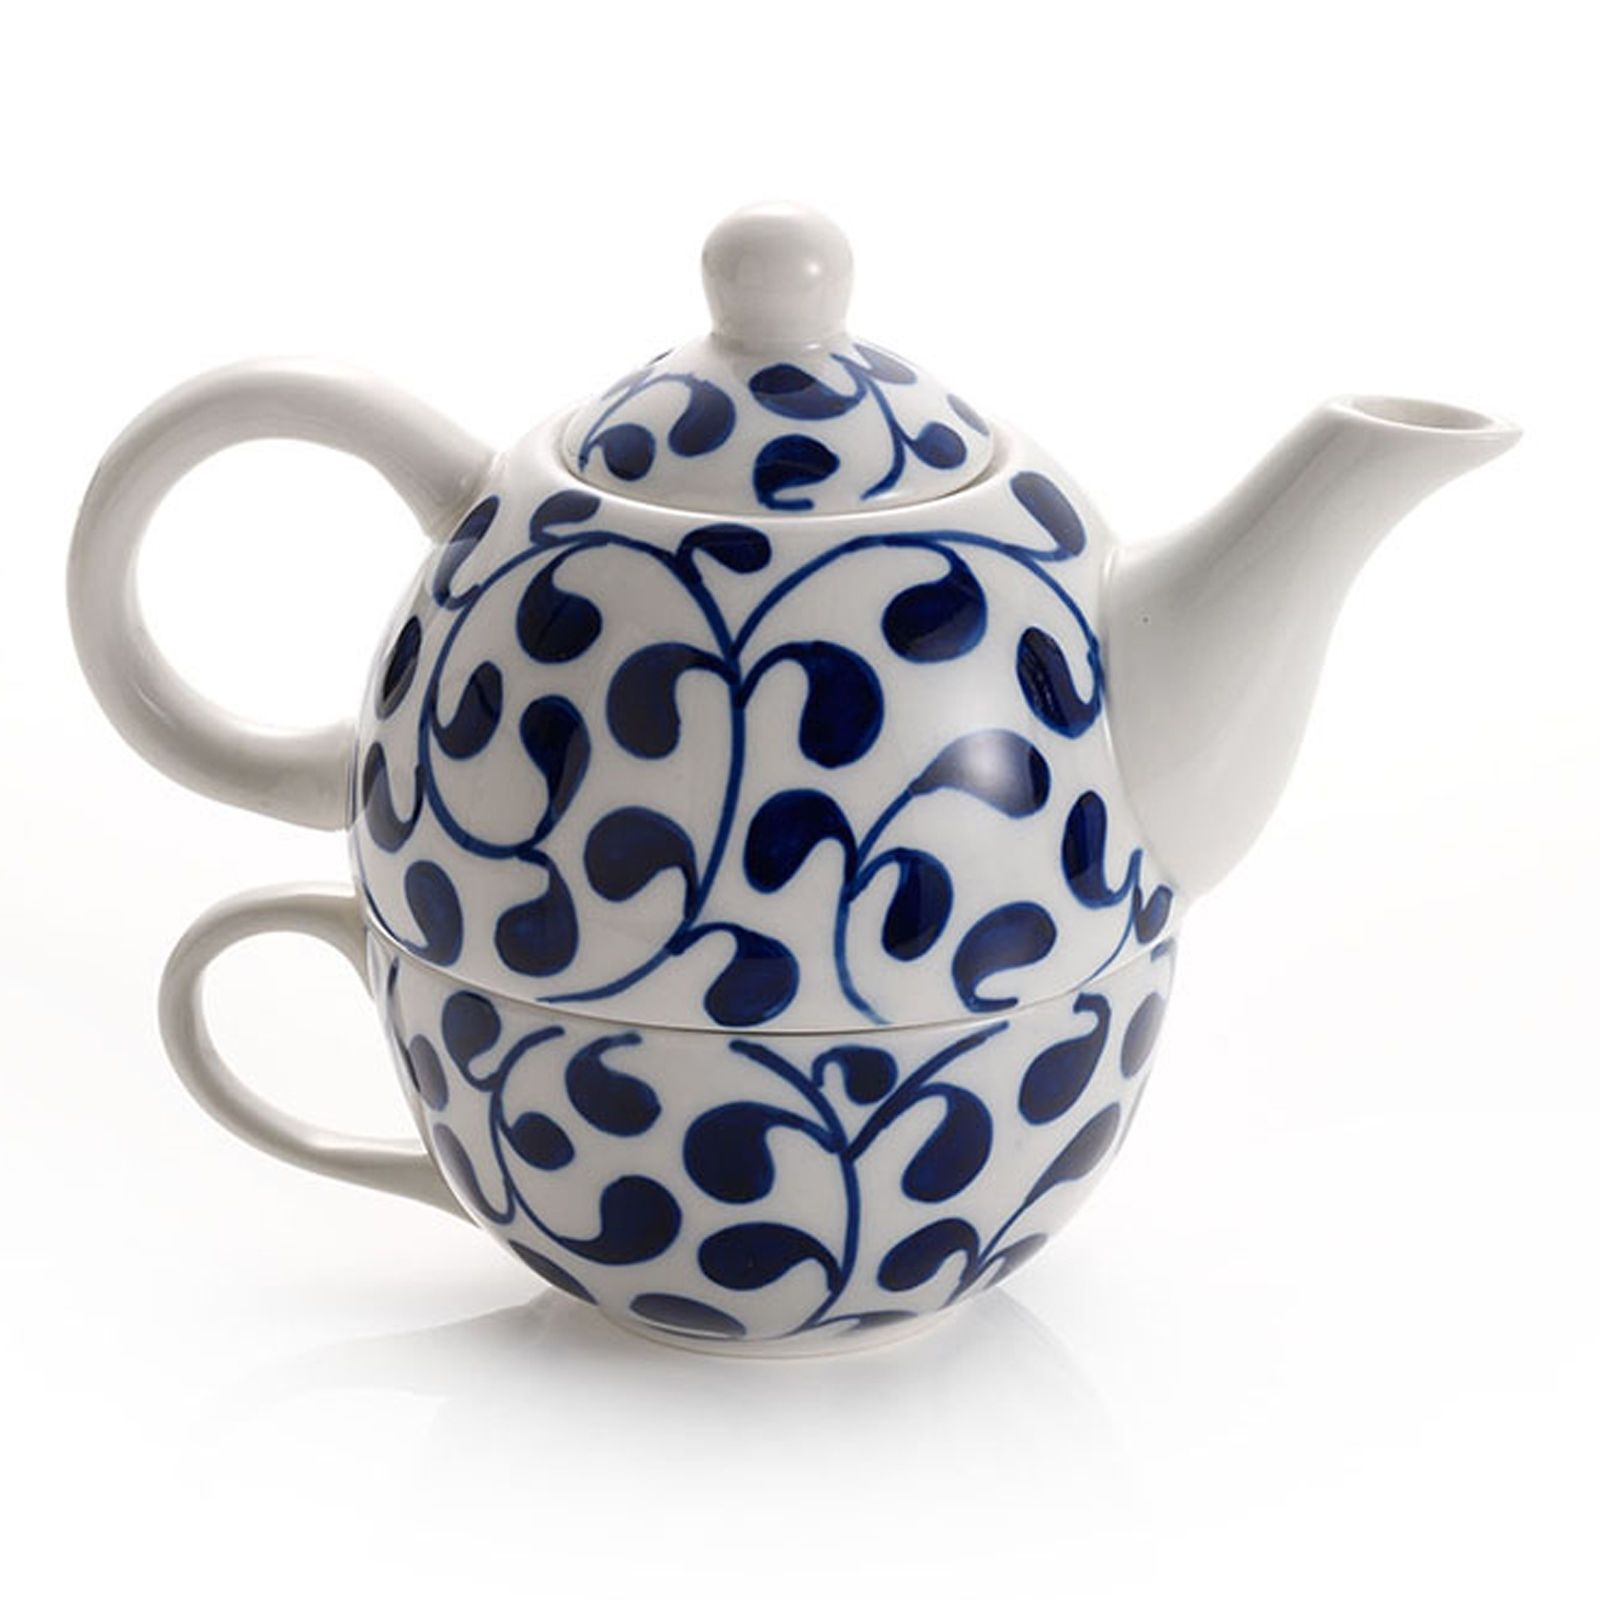 Tea Set for One Blue White Ceramic Porcelain Teapot Cup Hot Drink Mug